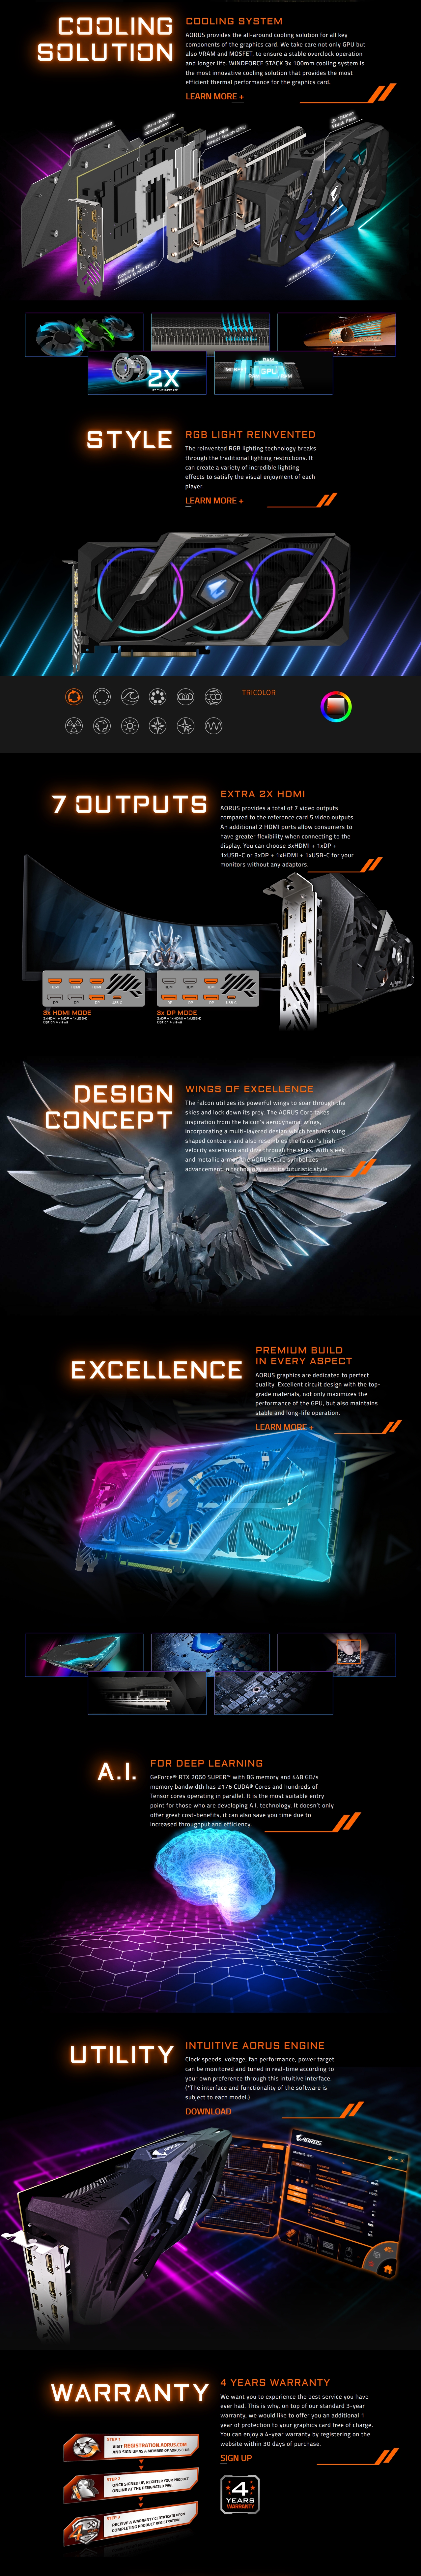 A large marketing image providing additional information about the product Gigabyte GeForce RTX2060 Super Aorus 8GB GDDR6 - Additional alt info not provided